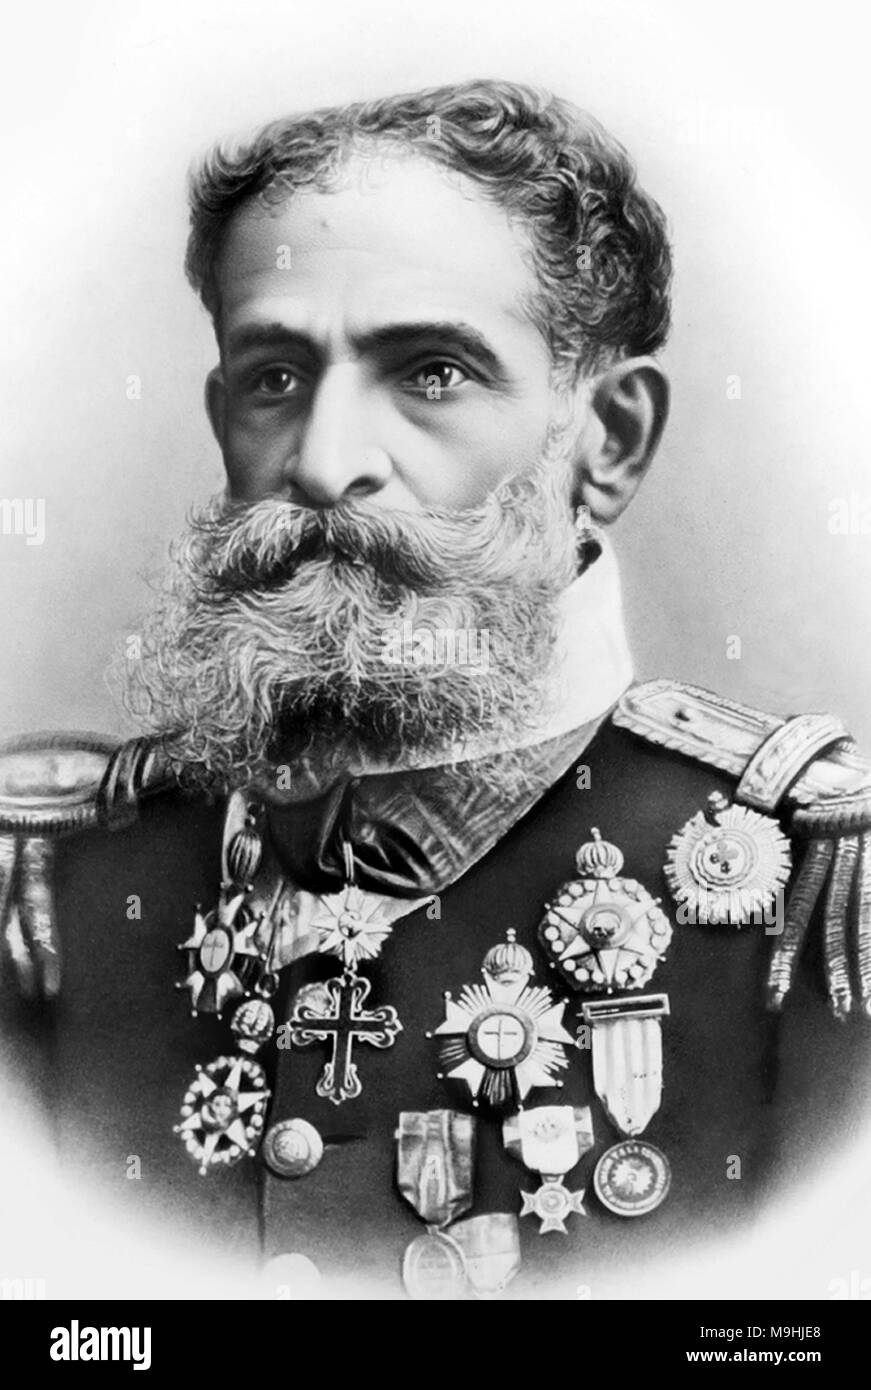 Manuel Deodoro da Fonseca (1827 – 1892) Brazilian politician and military officer who served as the first President of Brazil. - Stock Image